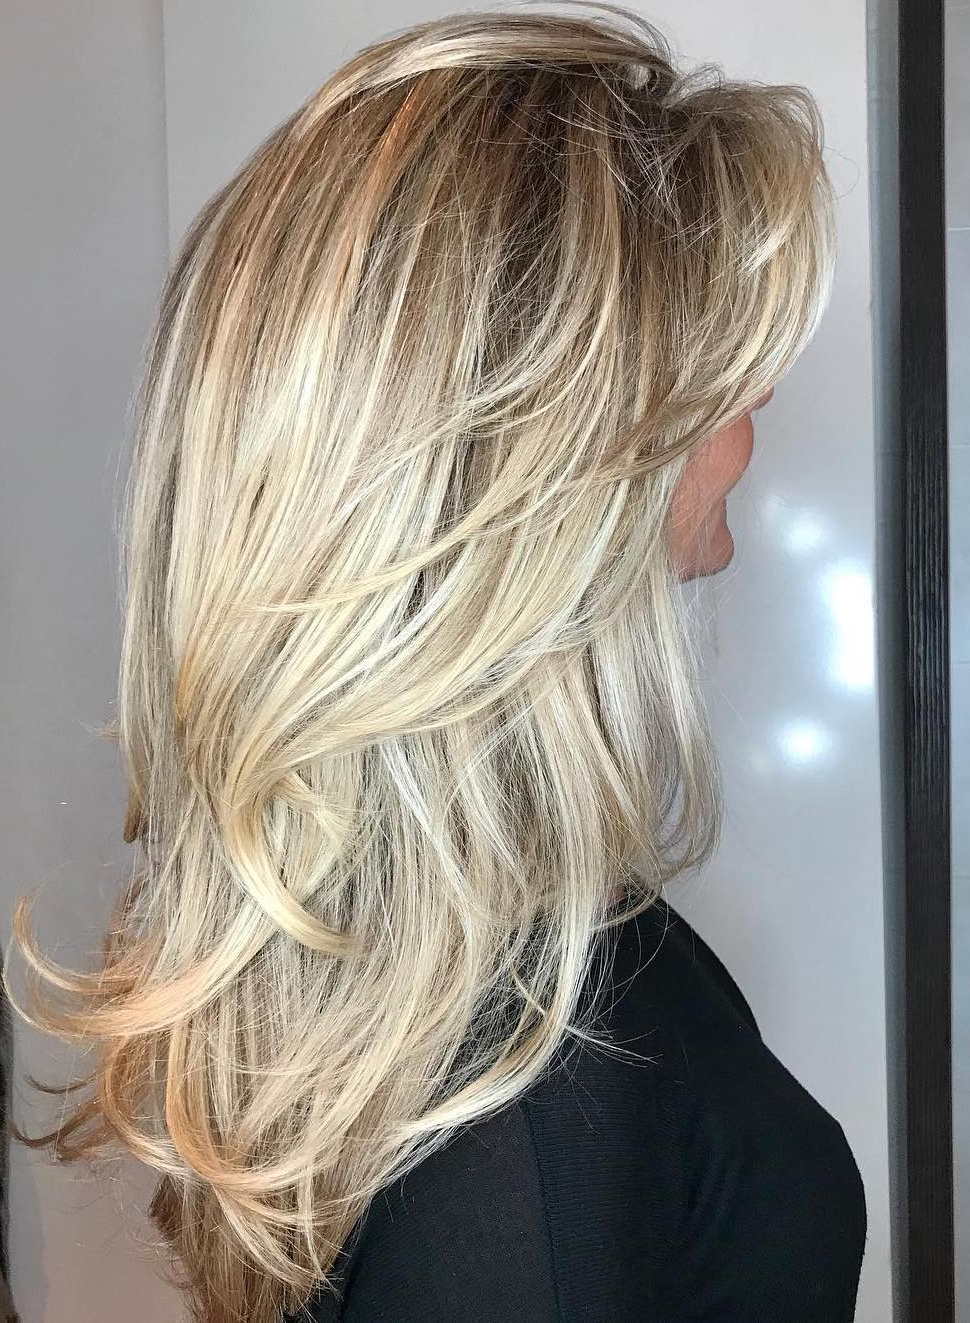 Well Liked Cute Bangs And Messy Texture Hairstyles Intended For 50 Cute Long Layered Haircuts With Bangs 2019 (Gallery 7 of 20)